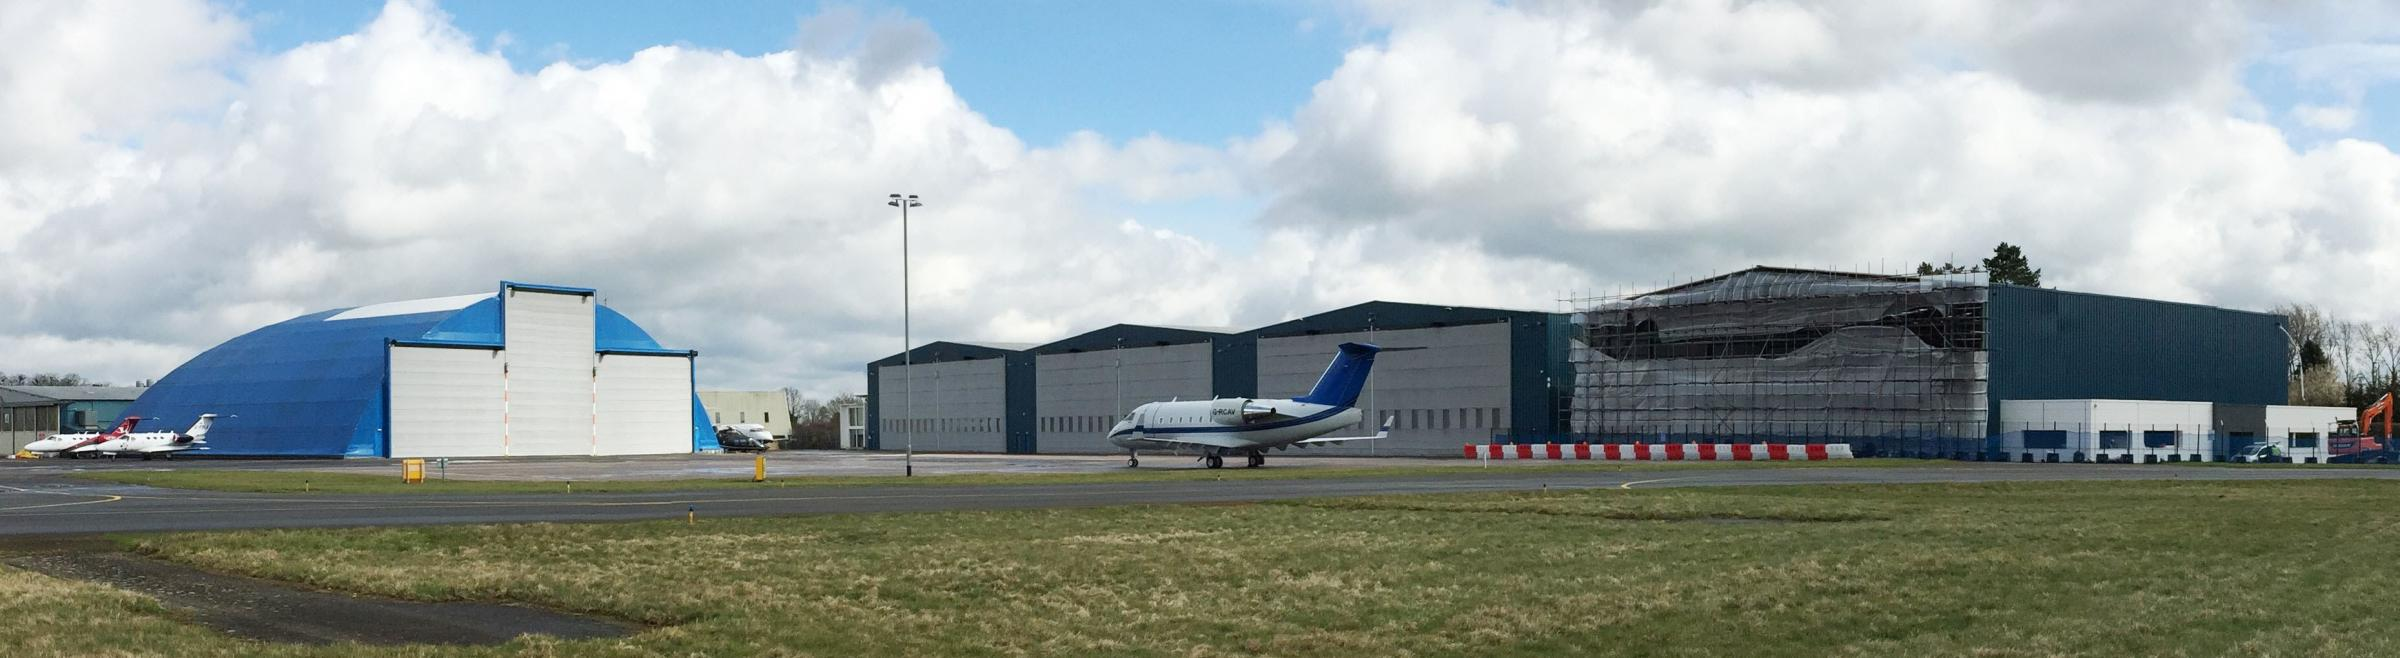 New hangars at London Oxford Airport. Pic London Oxford Airport